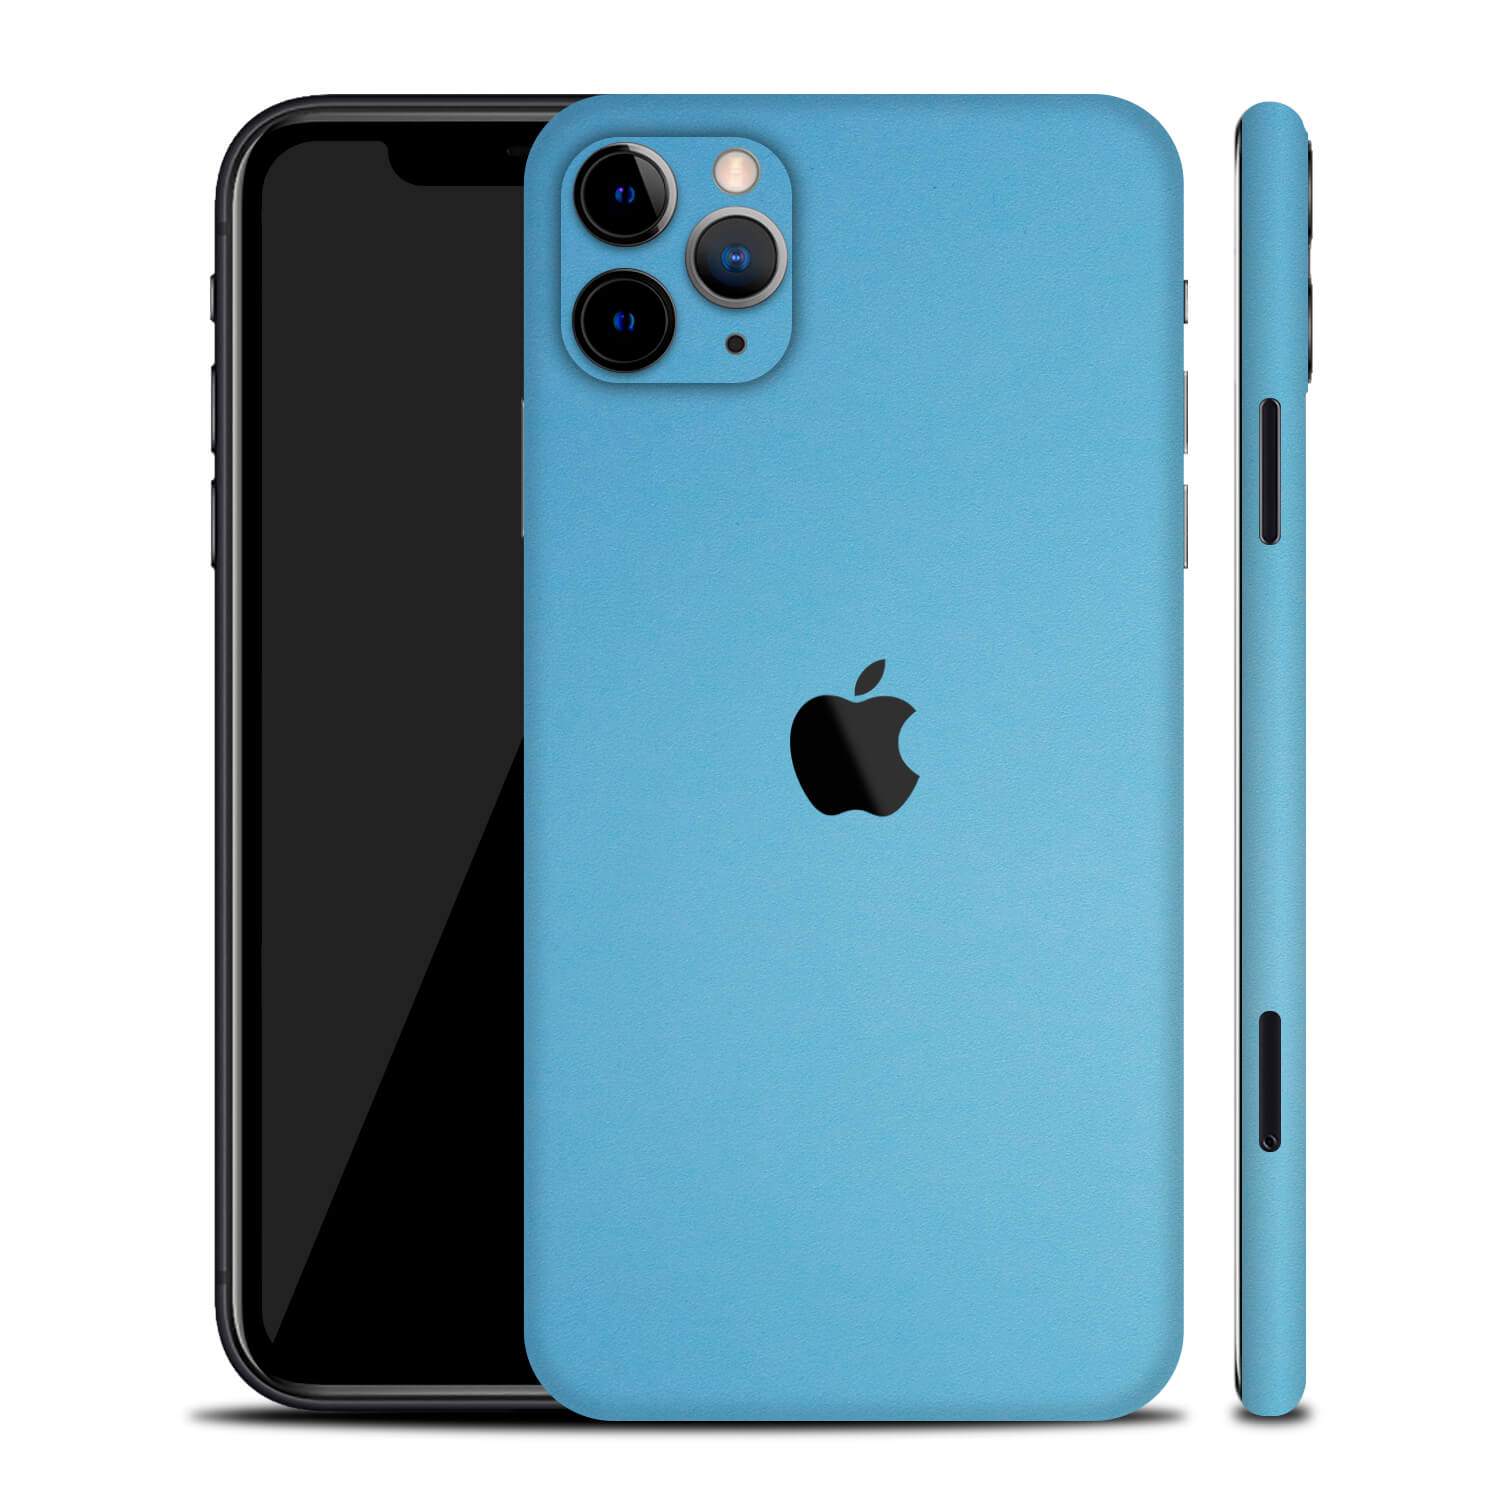 Iphone 11 Pro Max Skins And Wraps Custom Iphone Skins